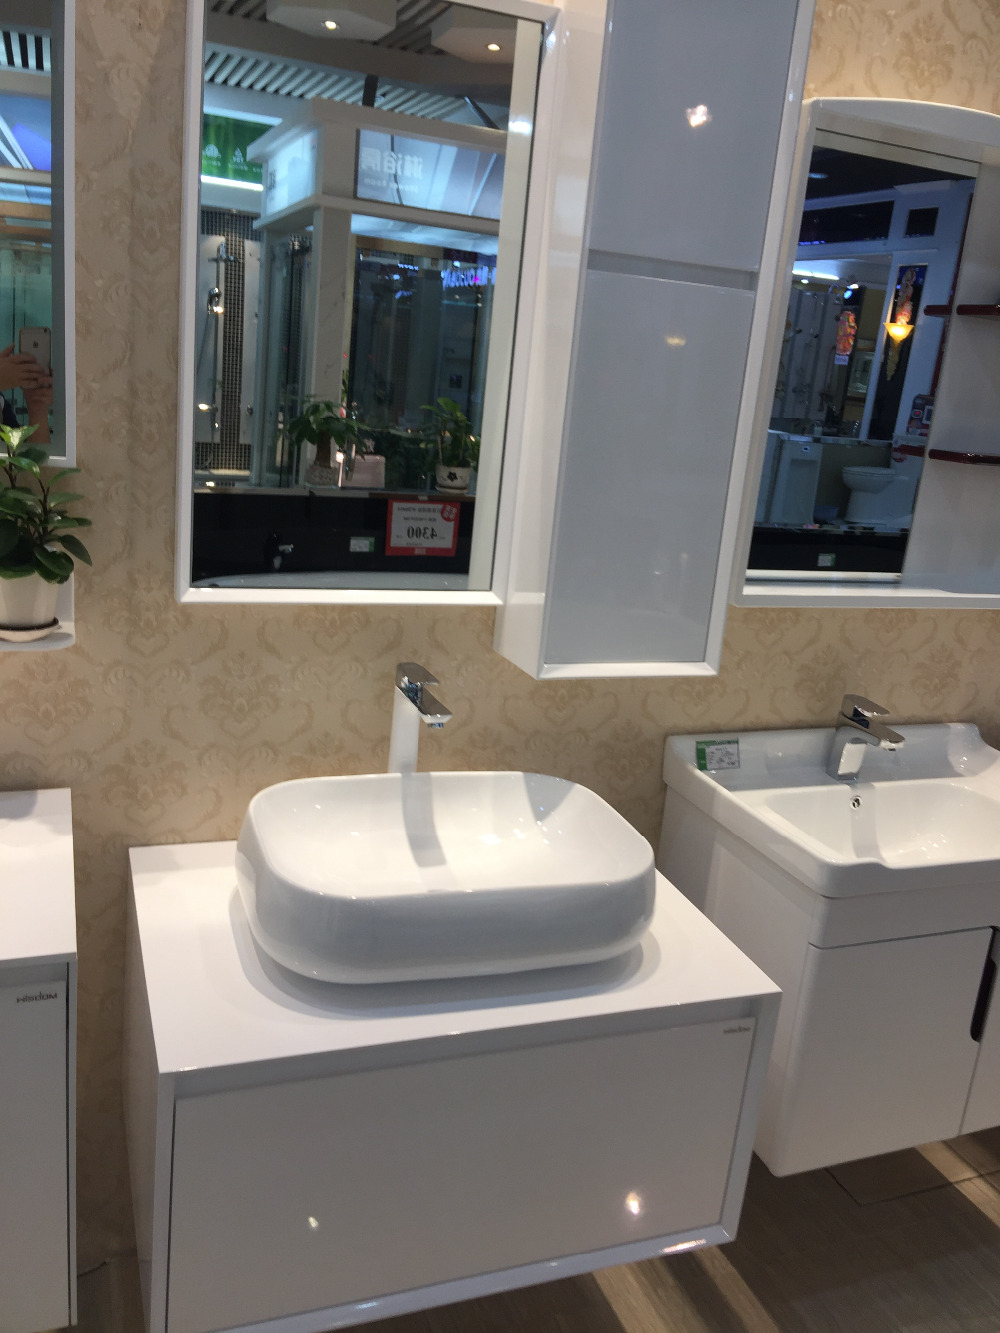 800mm counter top ceramic single basin with solid wooden bathroom vanity cloakroom cabinet with mirror